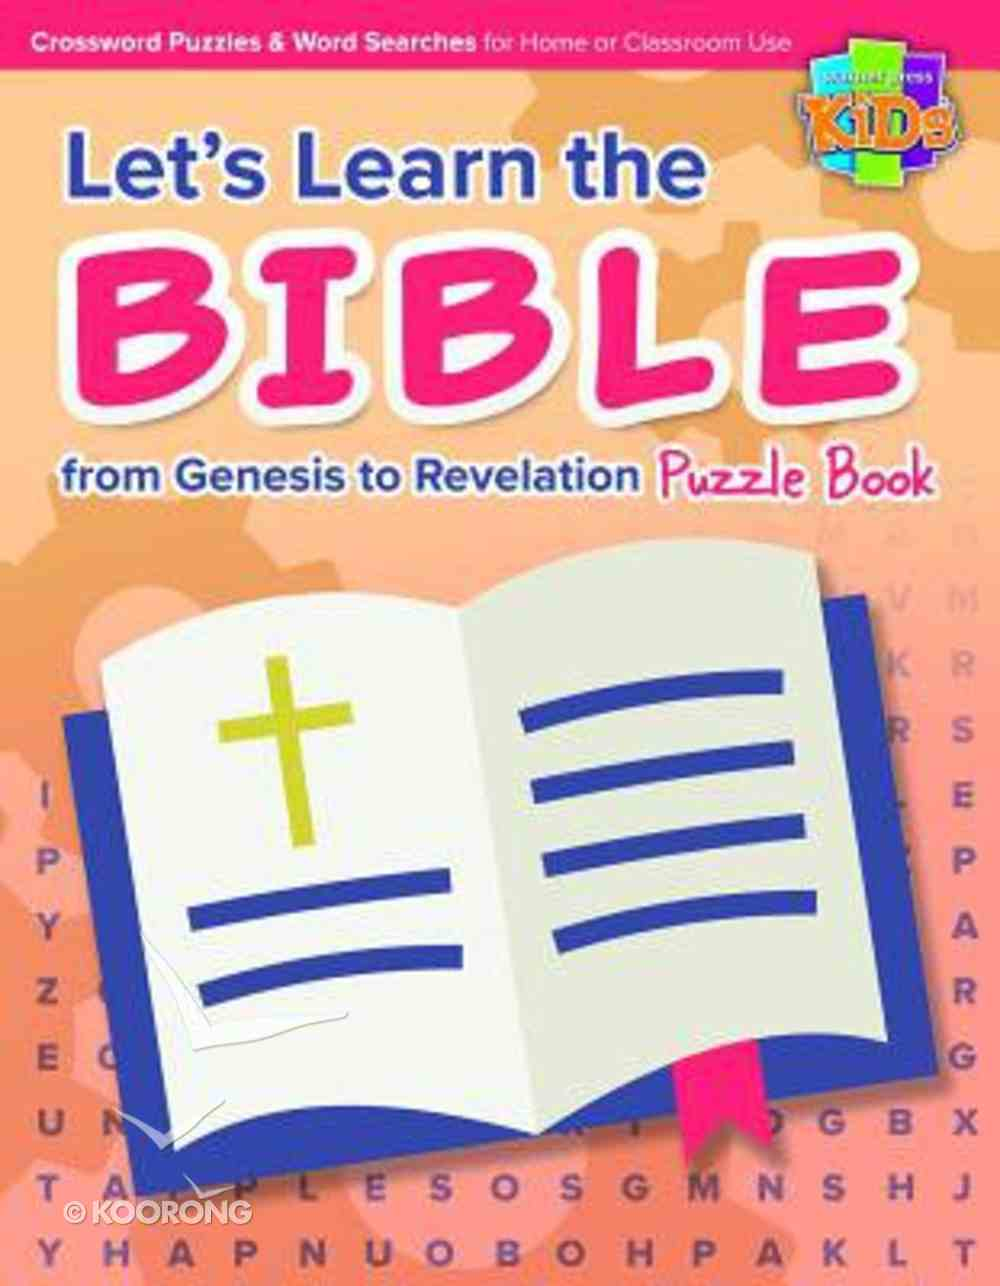 Let's Learn the Bible From Genesis to Revelation Puzzle Book Paperback